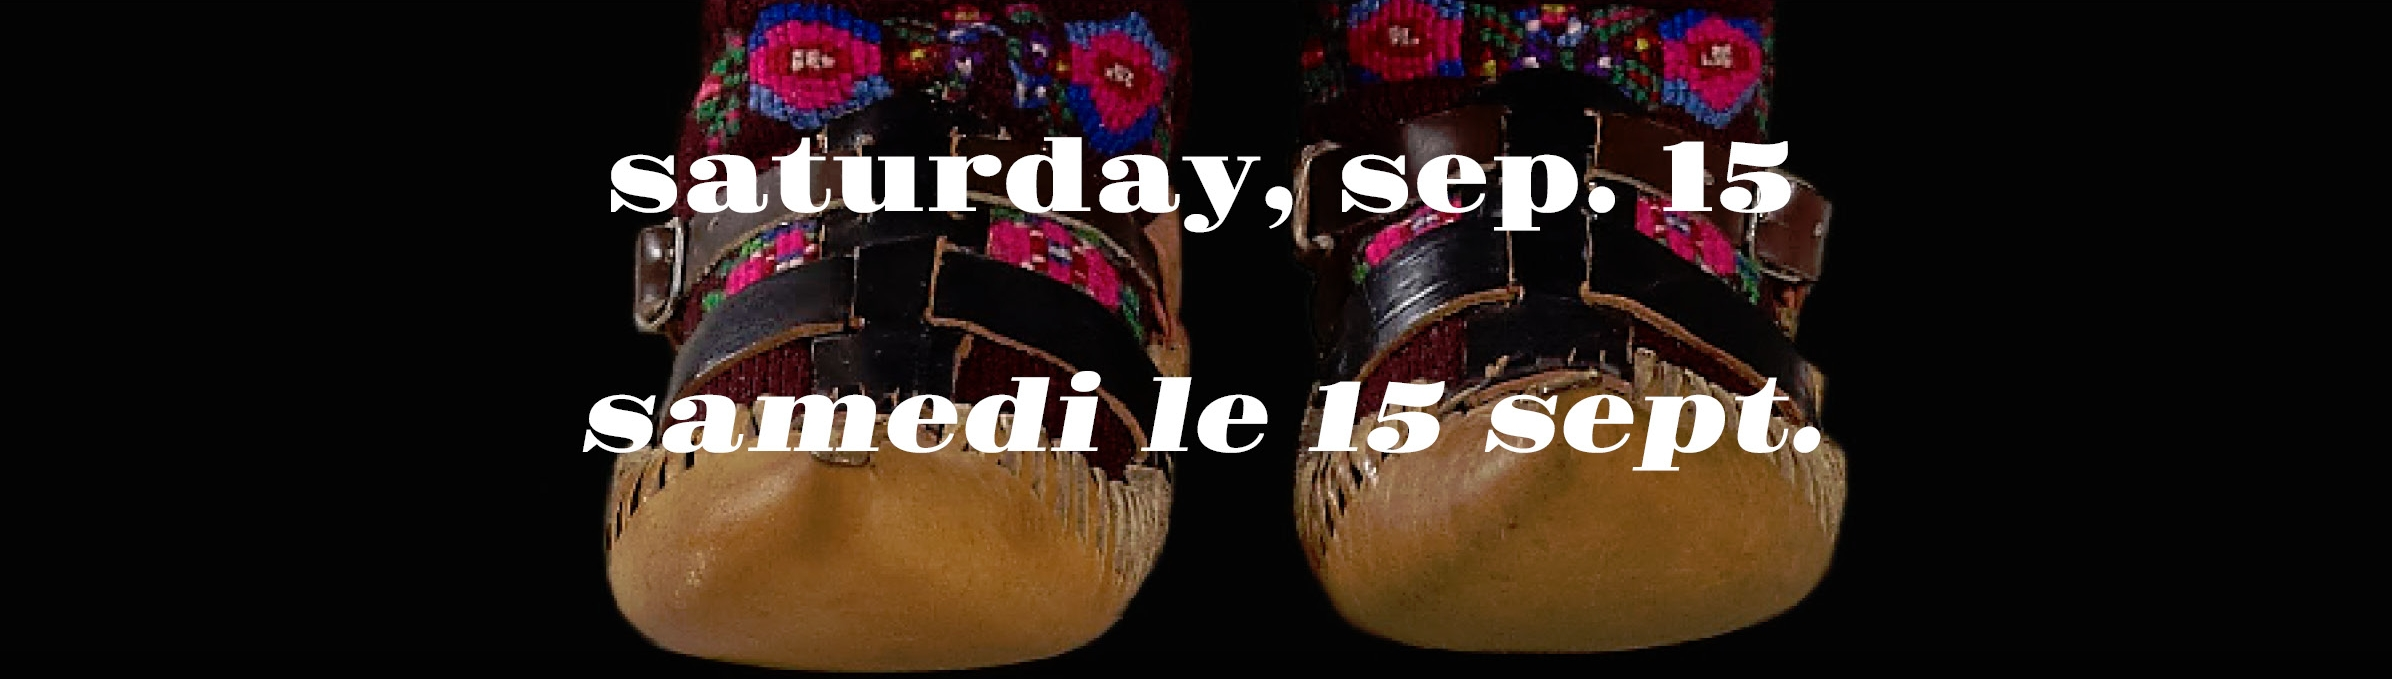 shoes_and_dates-1.jpg